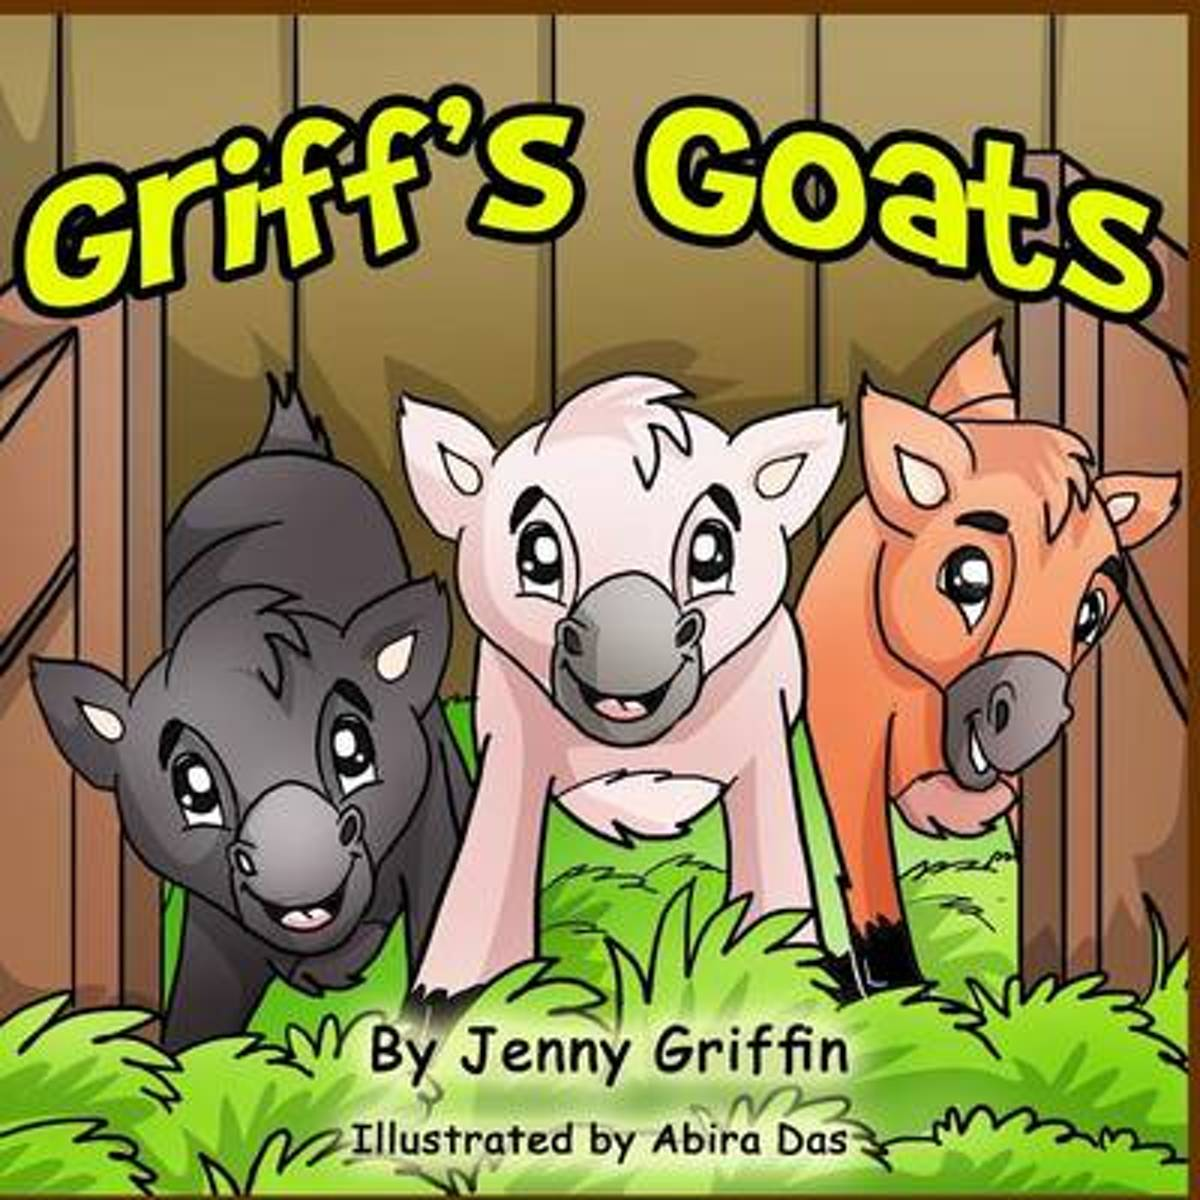 Griff's Goats